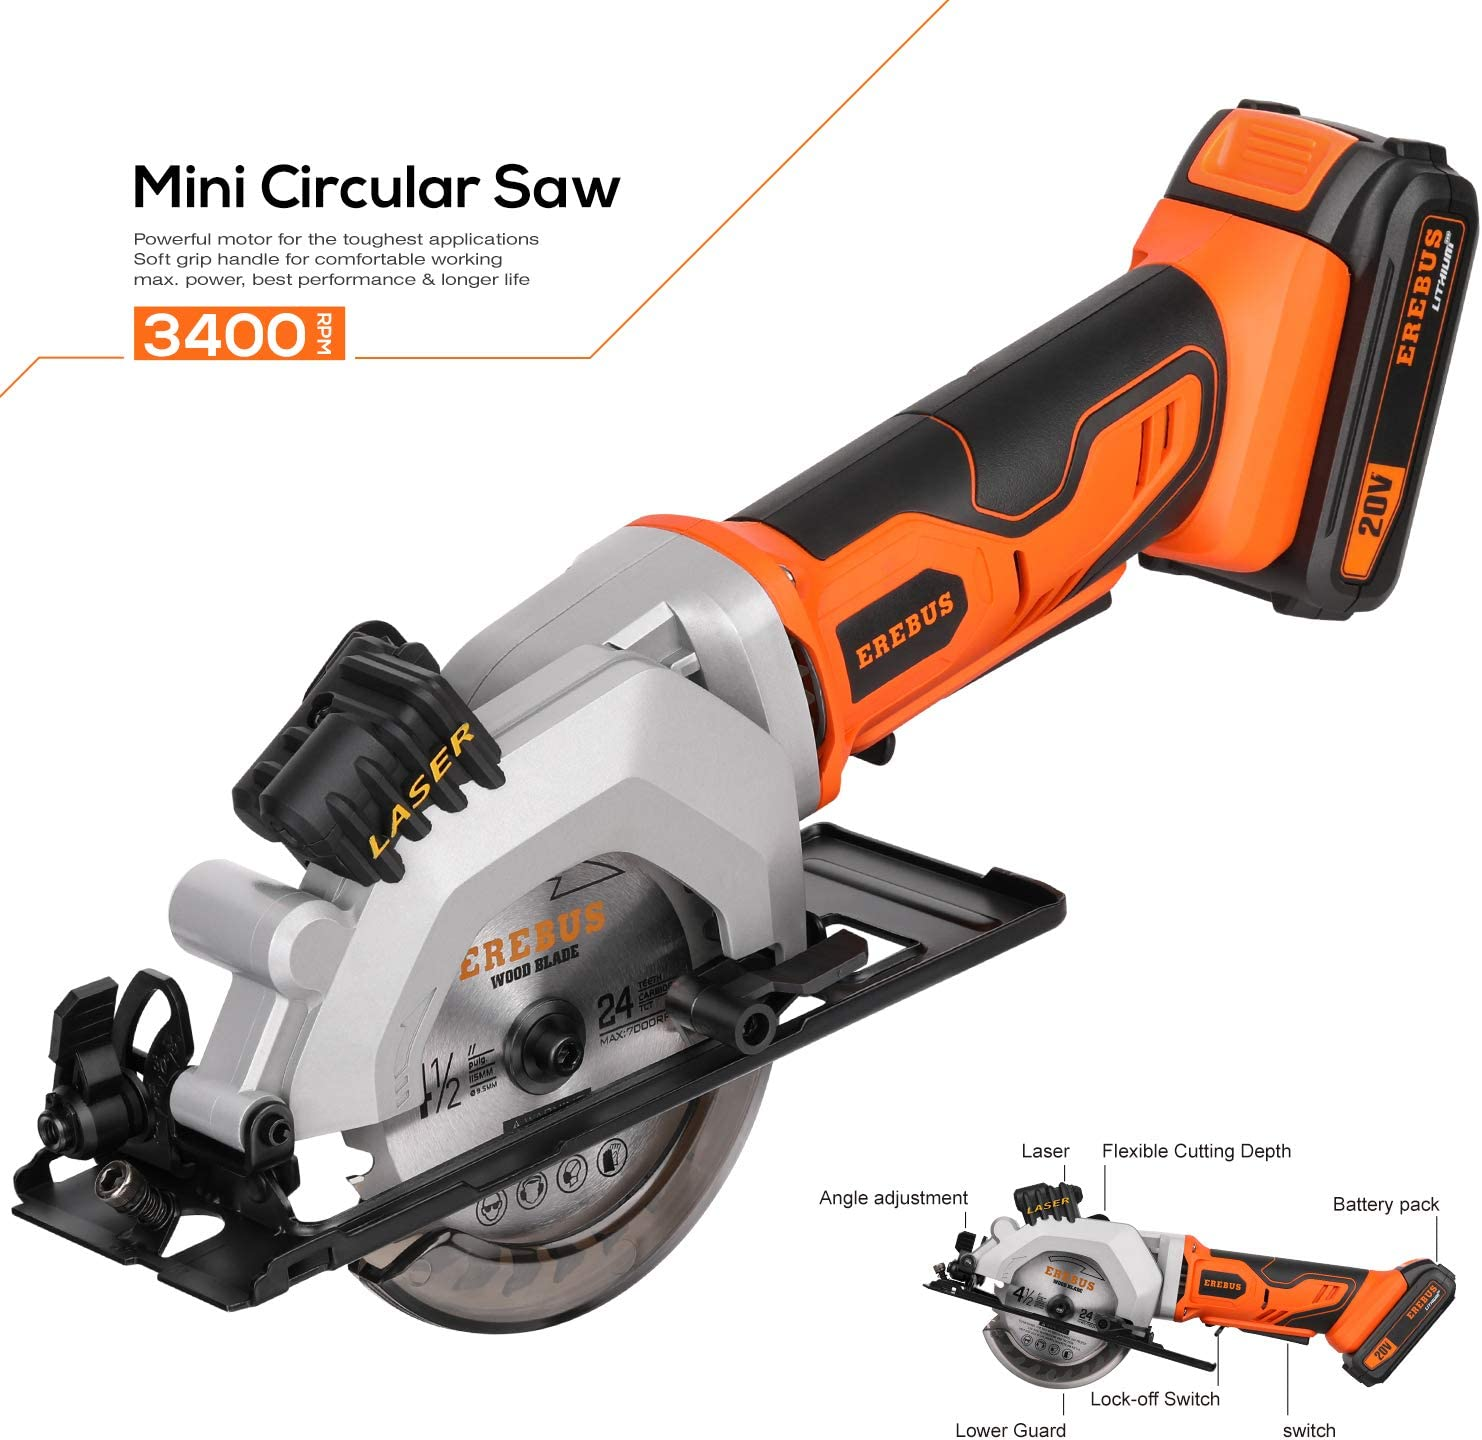 """EREBUS,97630,Circular Saws, 20V 3400RPM 4-1/2"""" Professional Cordless Circle Saw with Laser Guide, Rip Guide, Vacuum Adapter, 2Pcs Blades plus 1 Allen Wrench, Max Cutting Depth 1-11/16""""(90°), 1-1/8""""(45"""